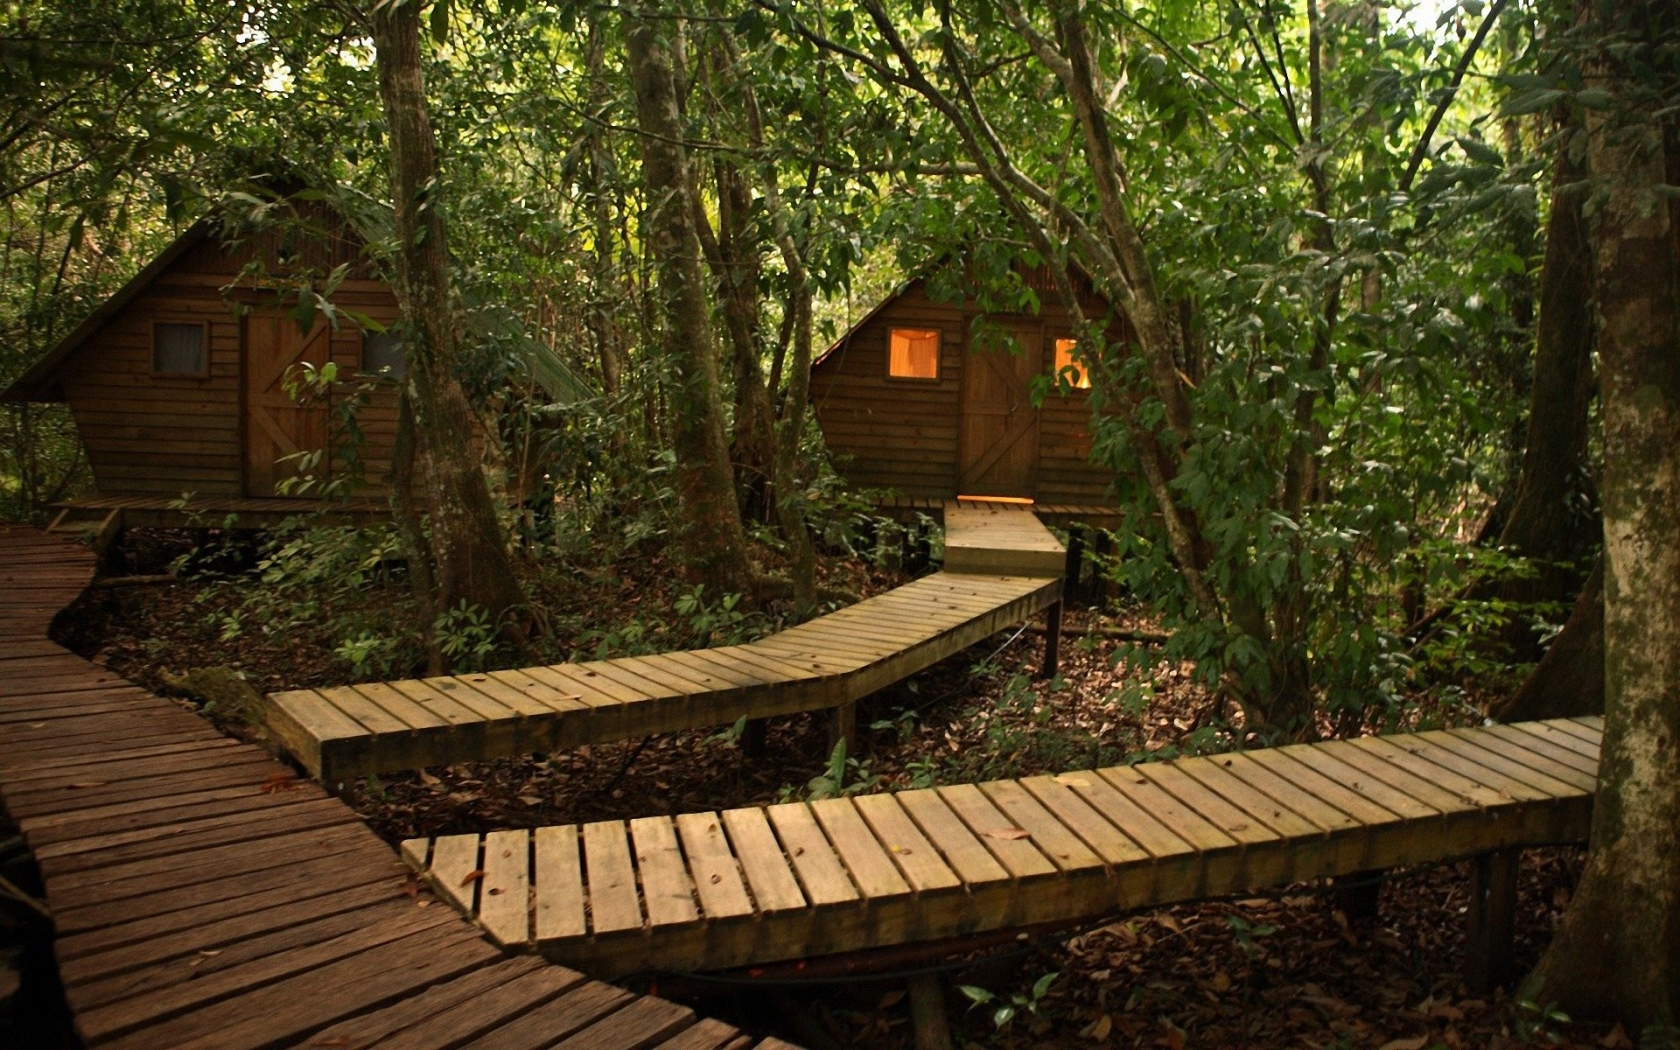 Cabin in the Forest 1680x1050 Wallpapers 1680x1050 Wallpapers 1680x1050